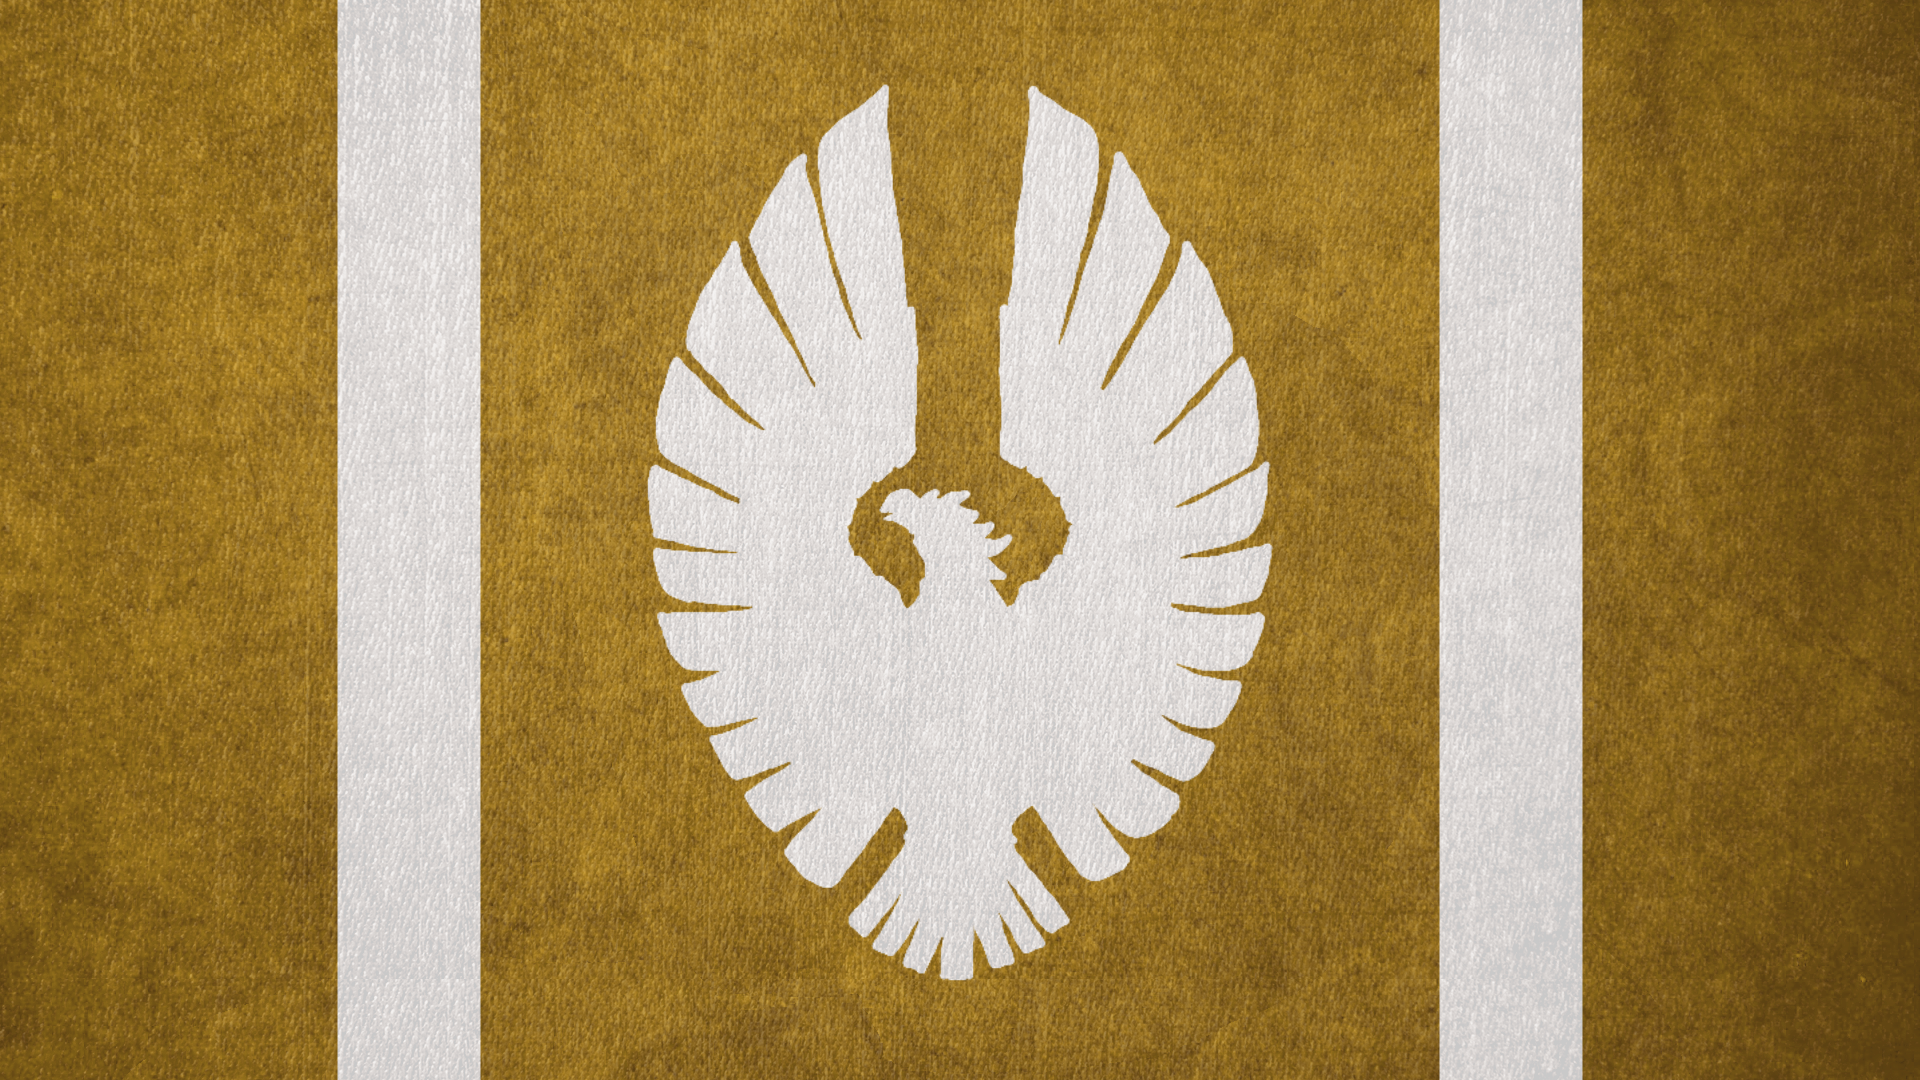 09 AD - Aldmeri Dominion Flag.png